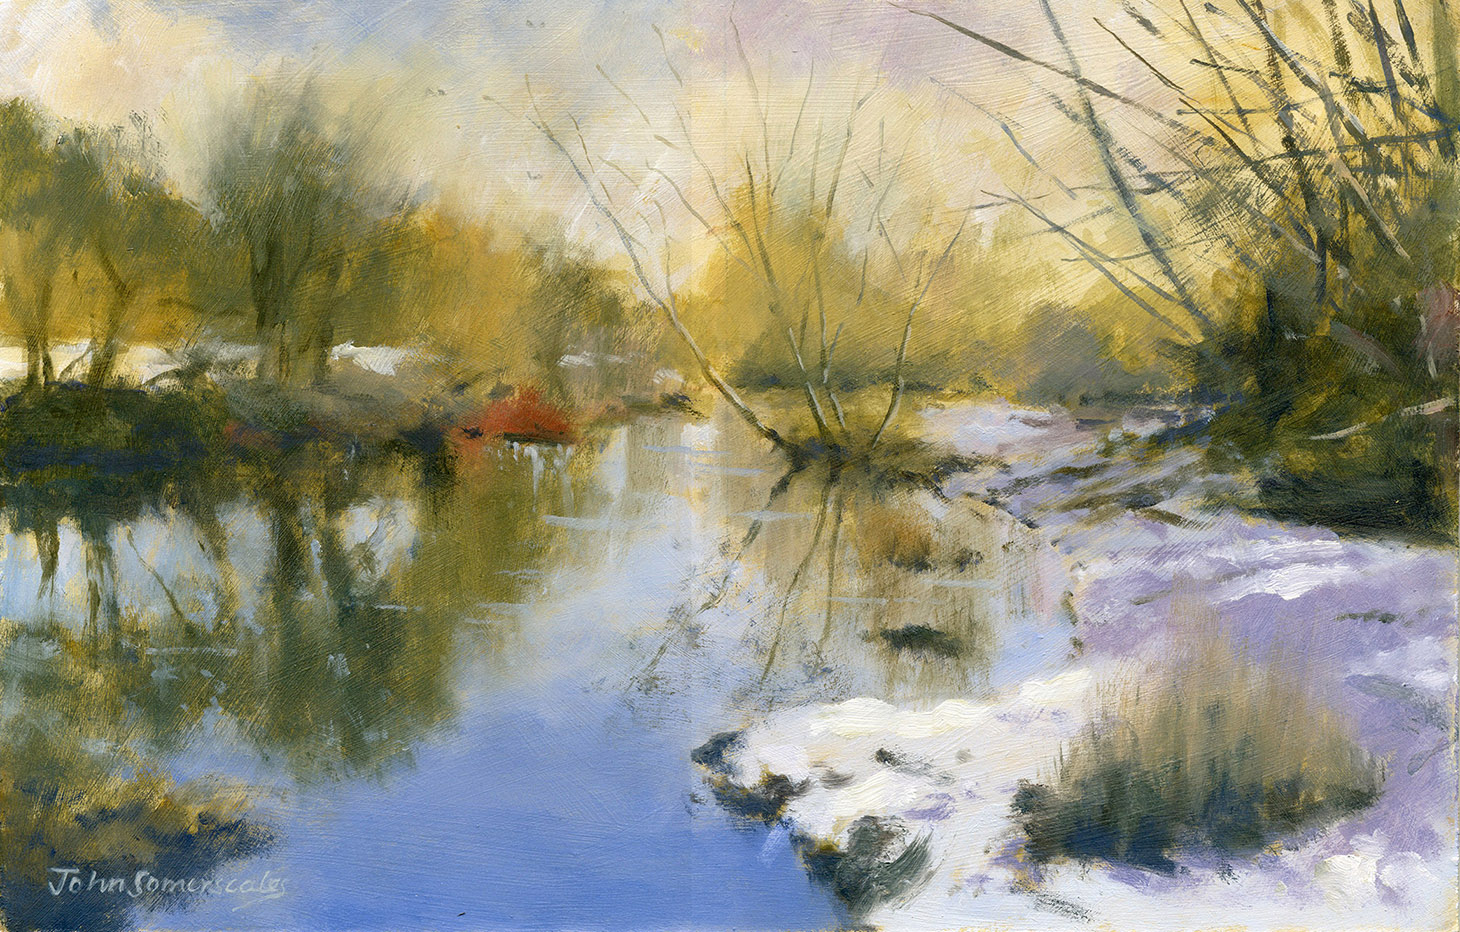 Winter on the Cherwell